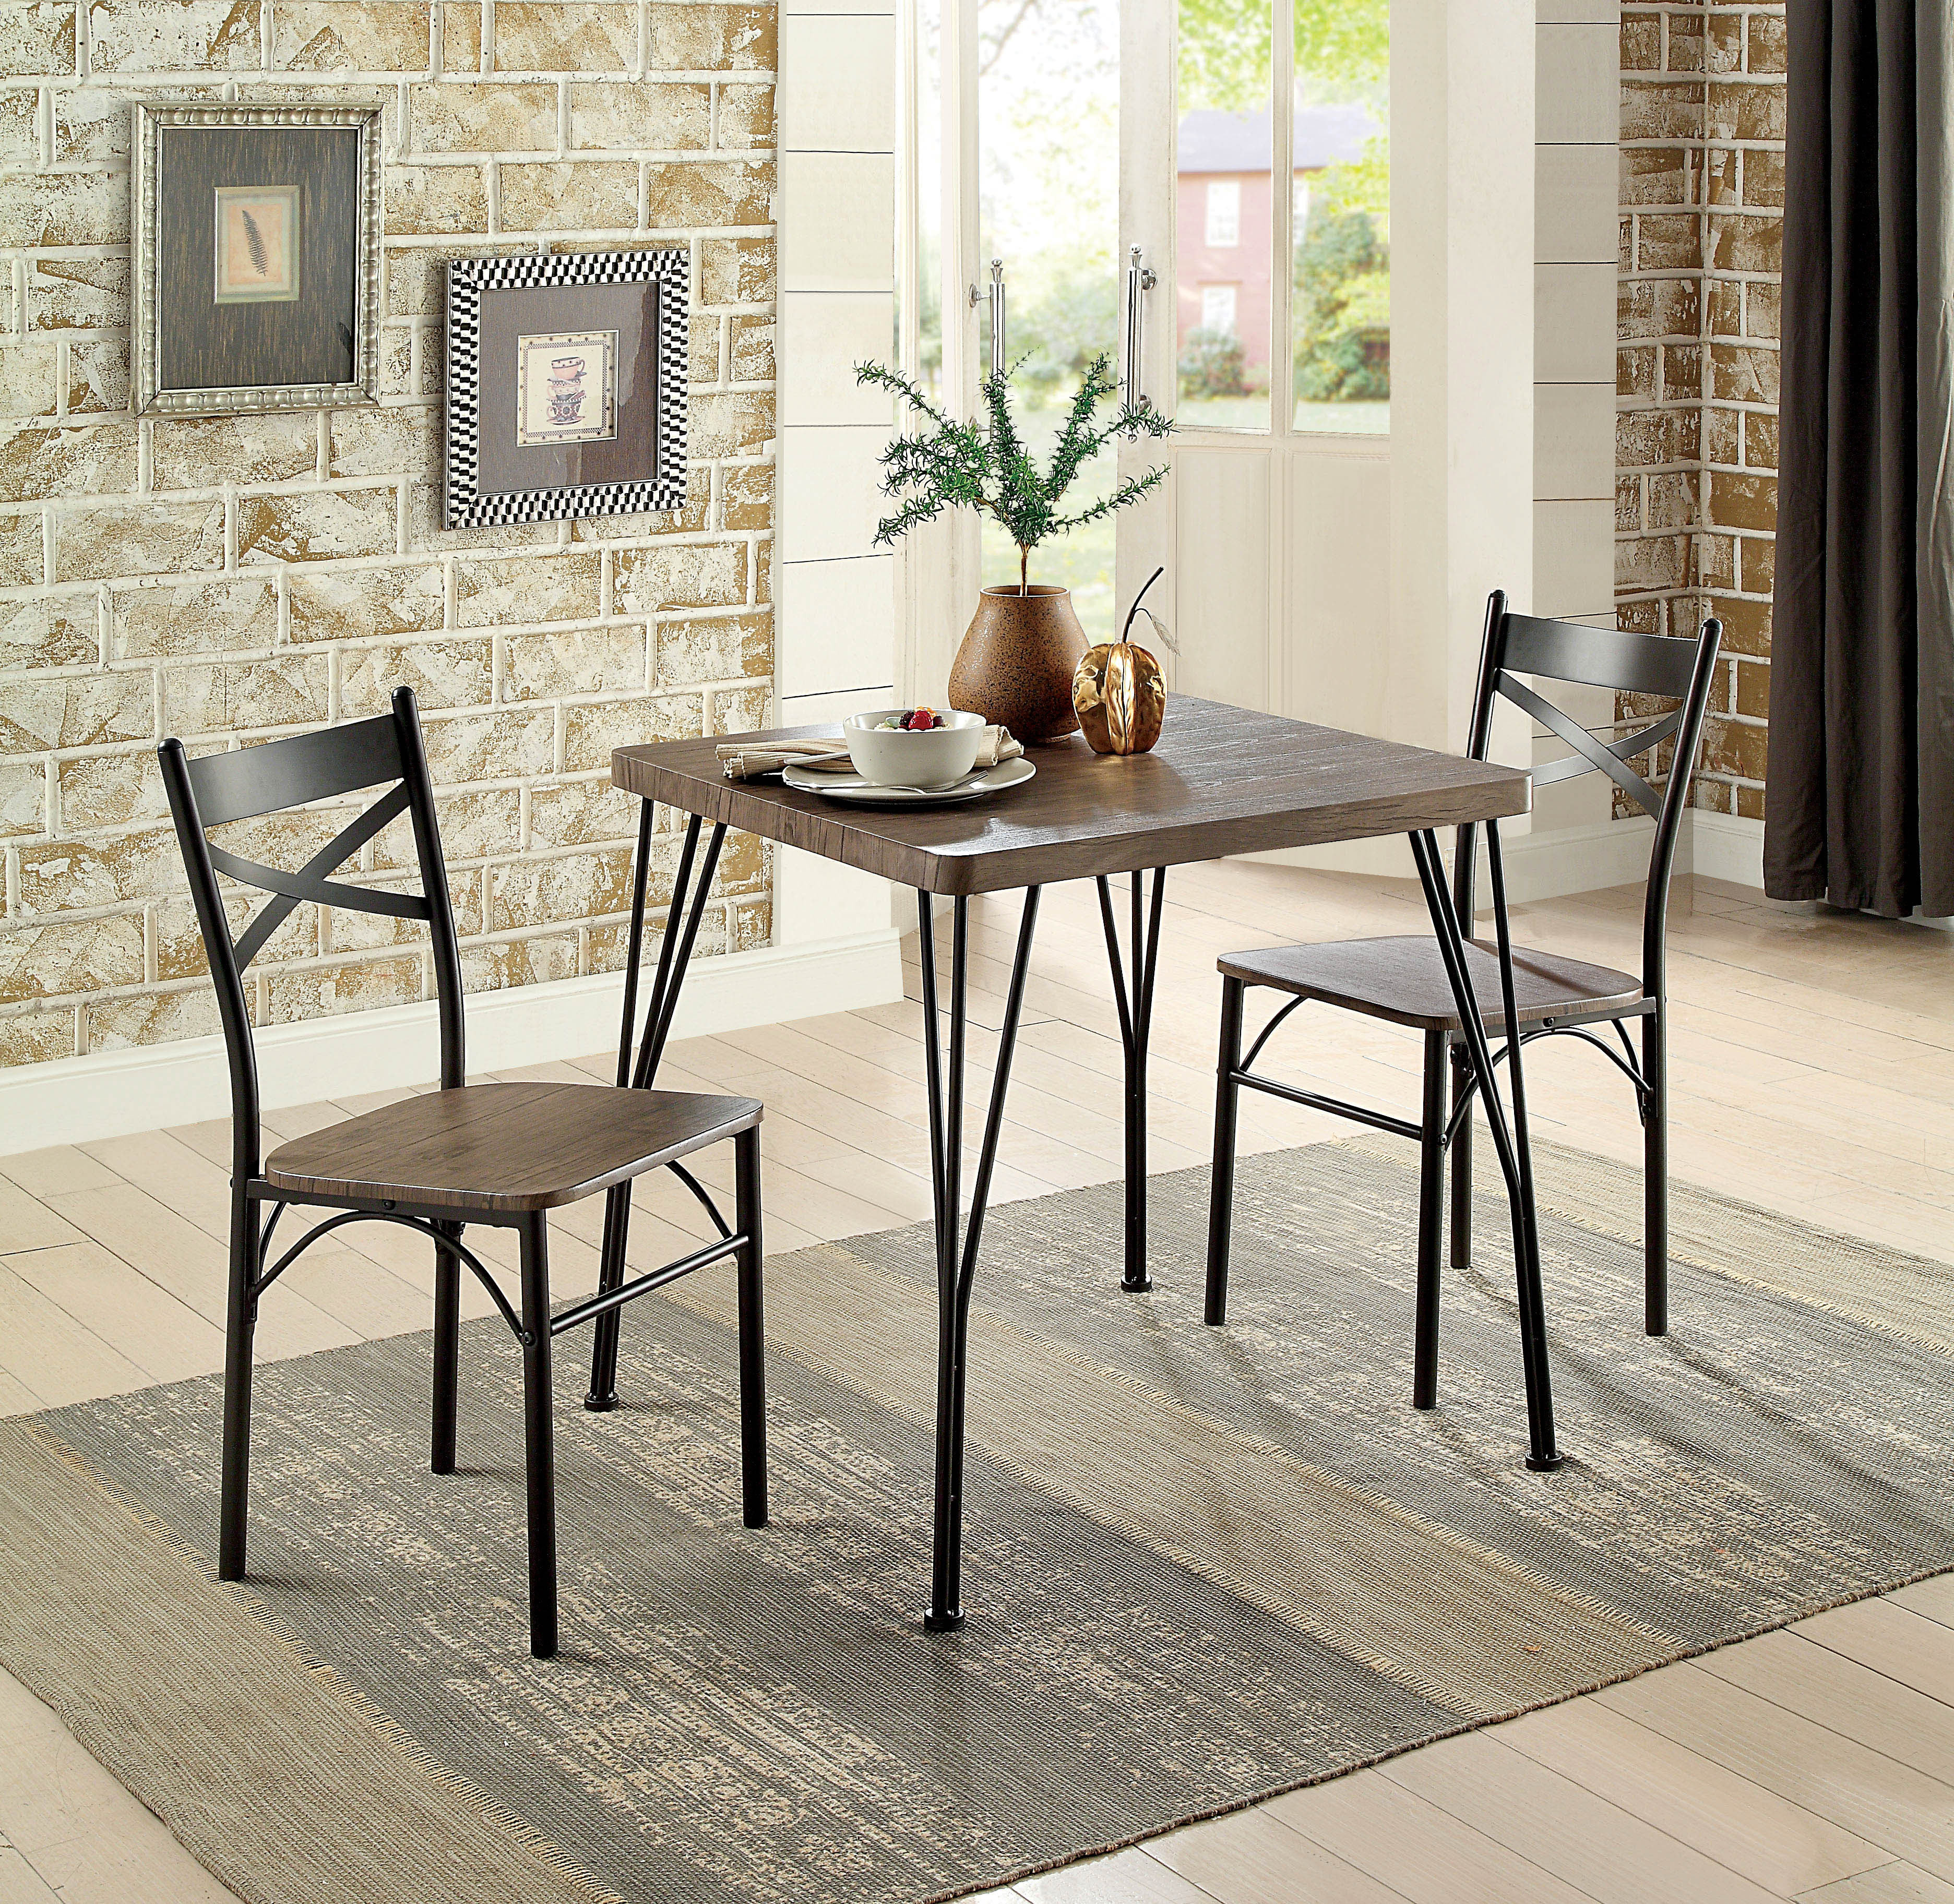 Laurel Foundry Modern Farmhouse Guertin 3 Piece Dining Set & Reviews With Regard To Famous Conover 5 Piece Dining Sets (View 16 of 25)